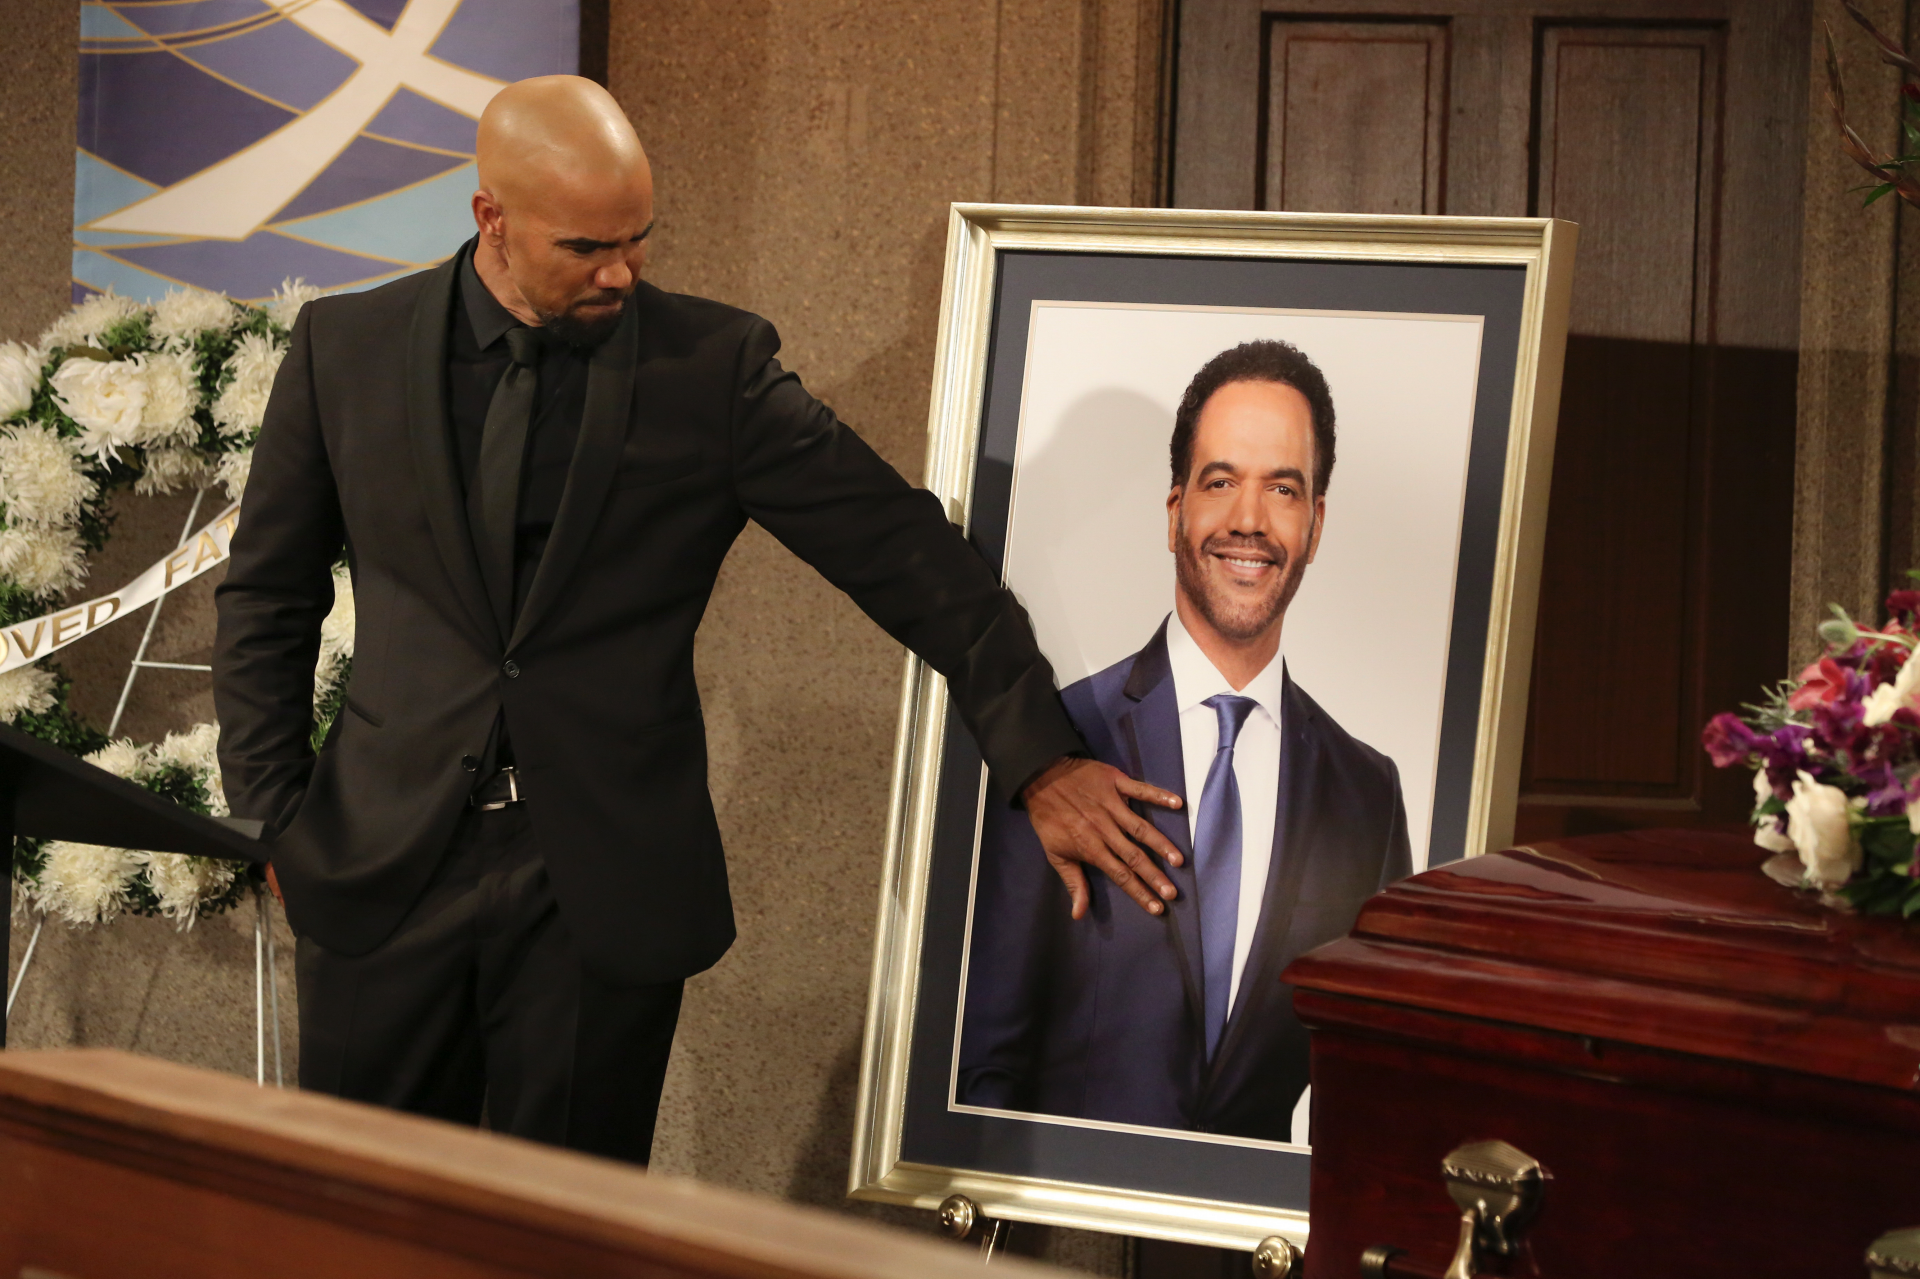 'The Young and the Restless' honors Kristoff St. John with 'emotional' 4-episode story arc